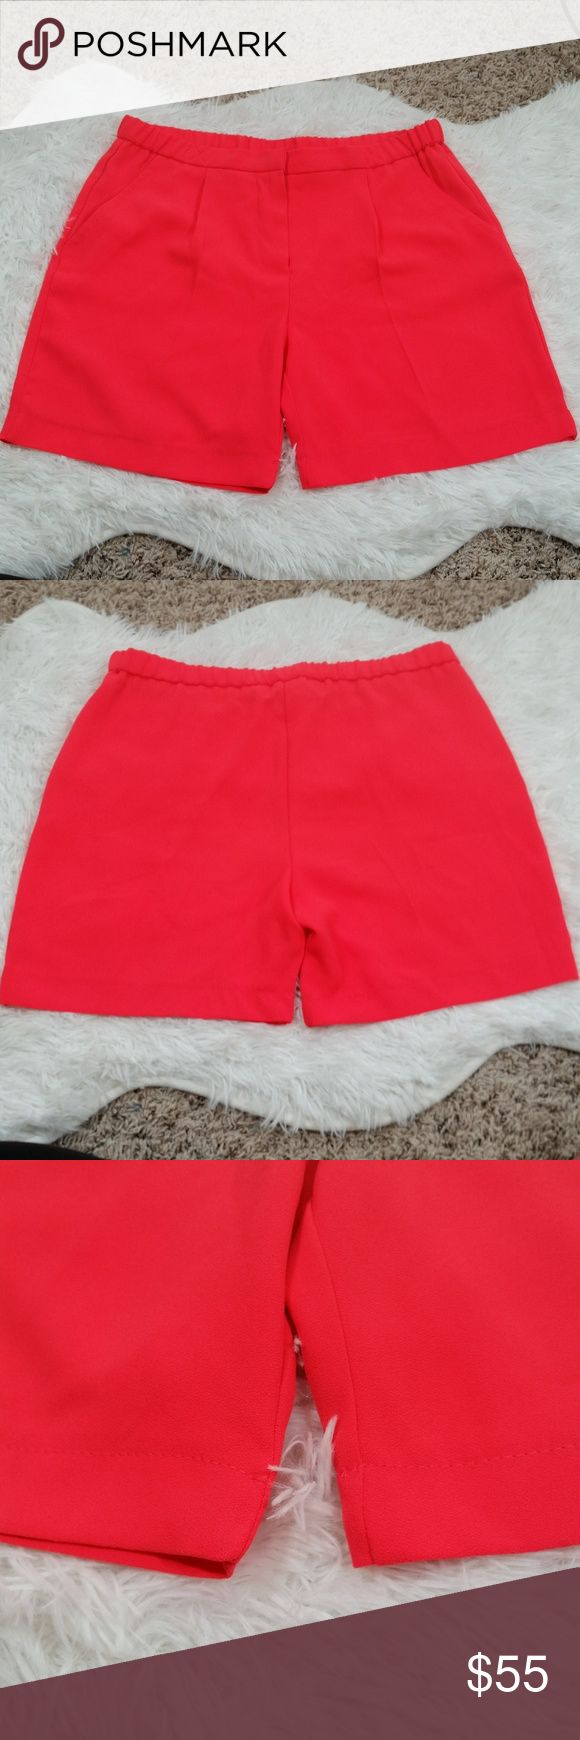 """Trina Turk Hot Pink Neon Daulton Shorts #126 Hi Guys! I'm Selling these Super Cute Trina Turk Daulton Shorts! In Great Condition. smooth zipper and hook closure with elastic on the back. Waist 15.5: flat. Hem 10.5"""" flat. Front Rise 10"""". Back Rise 14.5"""". vibrant pink great for summer and spring! Trina Turk Shorts"""